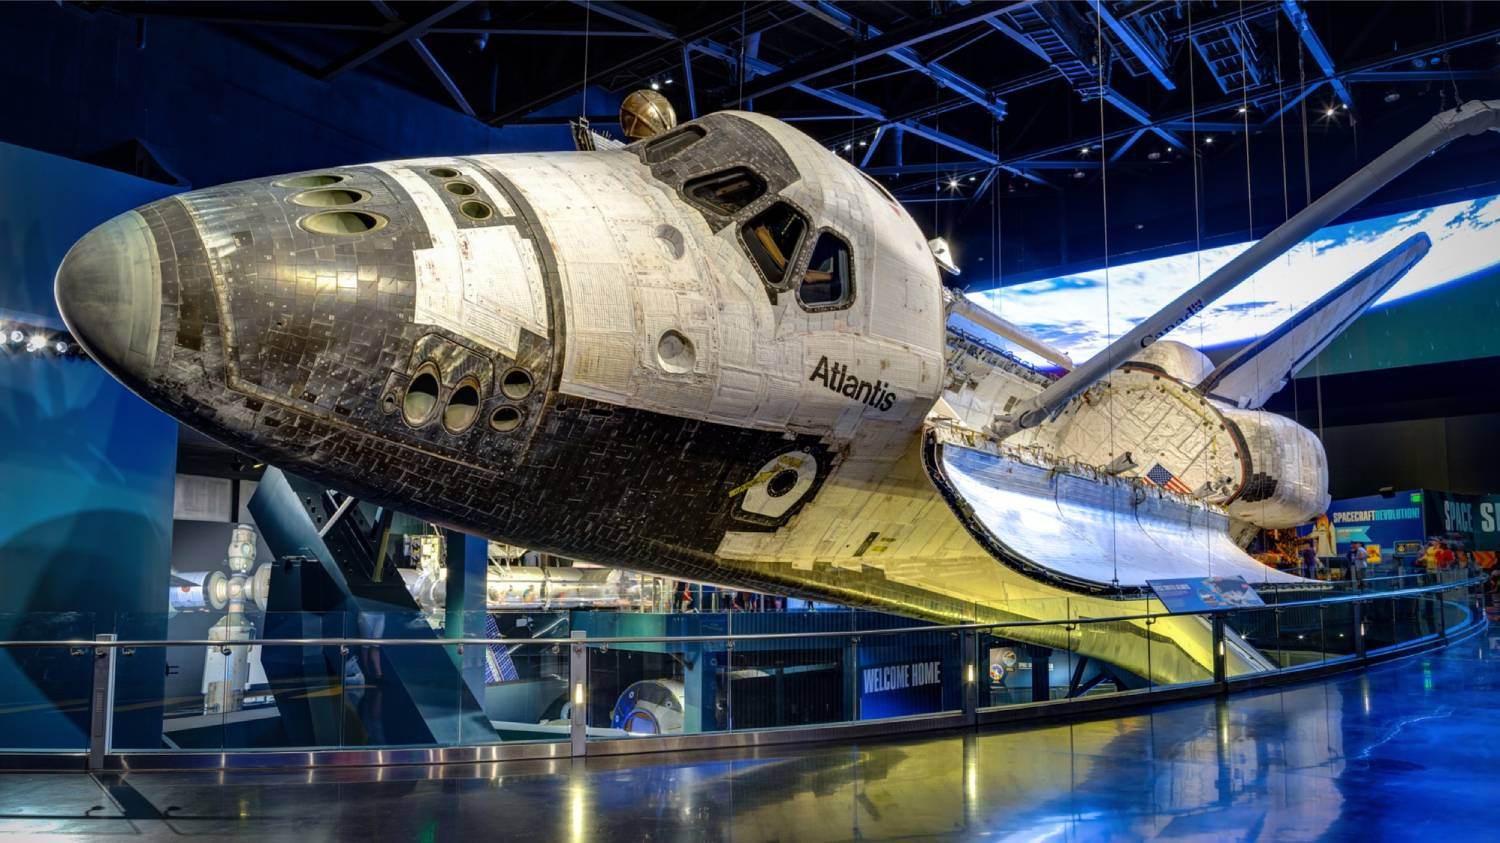 Kennedy Space Center - Things To Do In Orlando